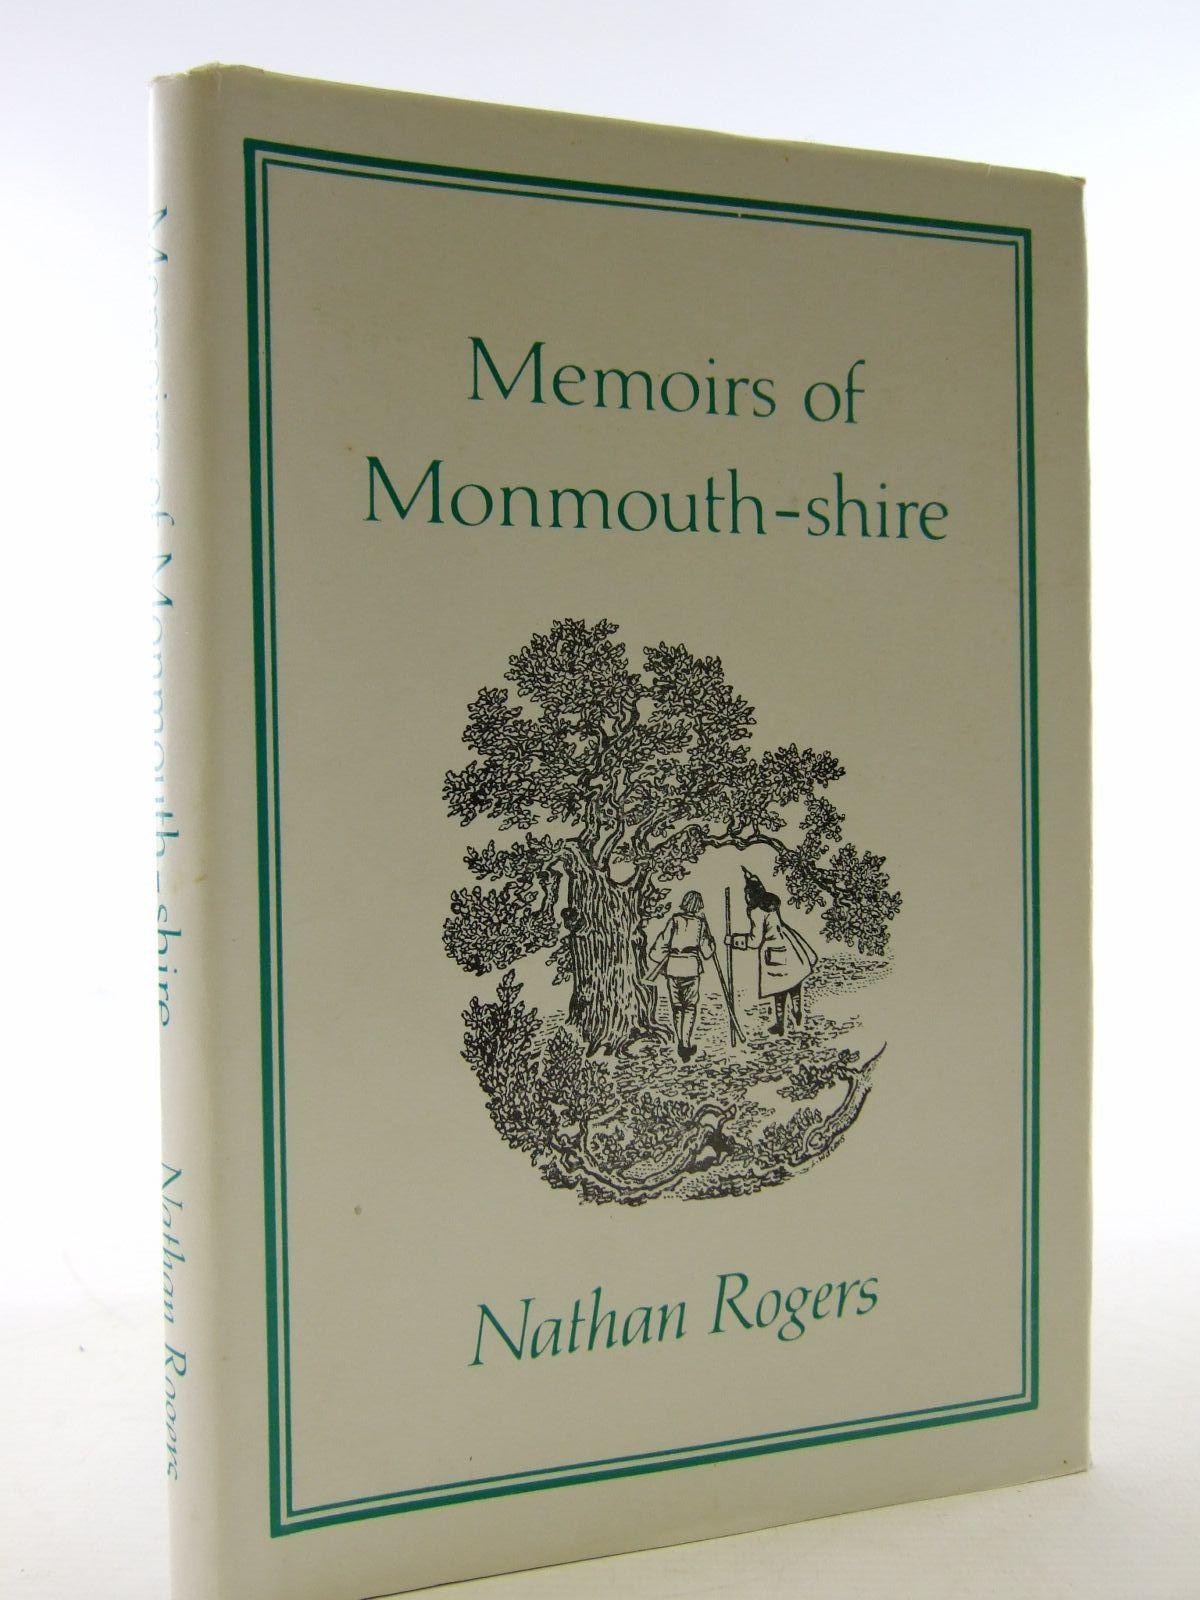 Photo of MEMOIRS OF MONMOUTH-SHIRE 1708 written by Rogers, Nathan illustrated by Waters, Linda published by Moss Rose Press (STOCK CODE: 1707288)  for sale by Stella & Rose's Books